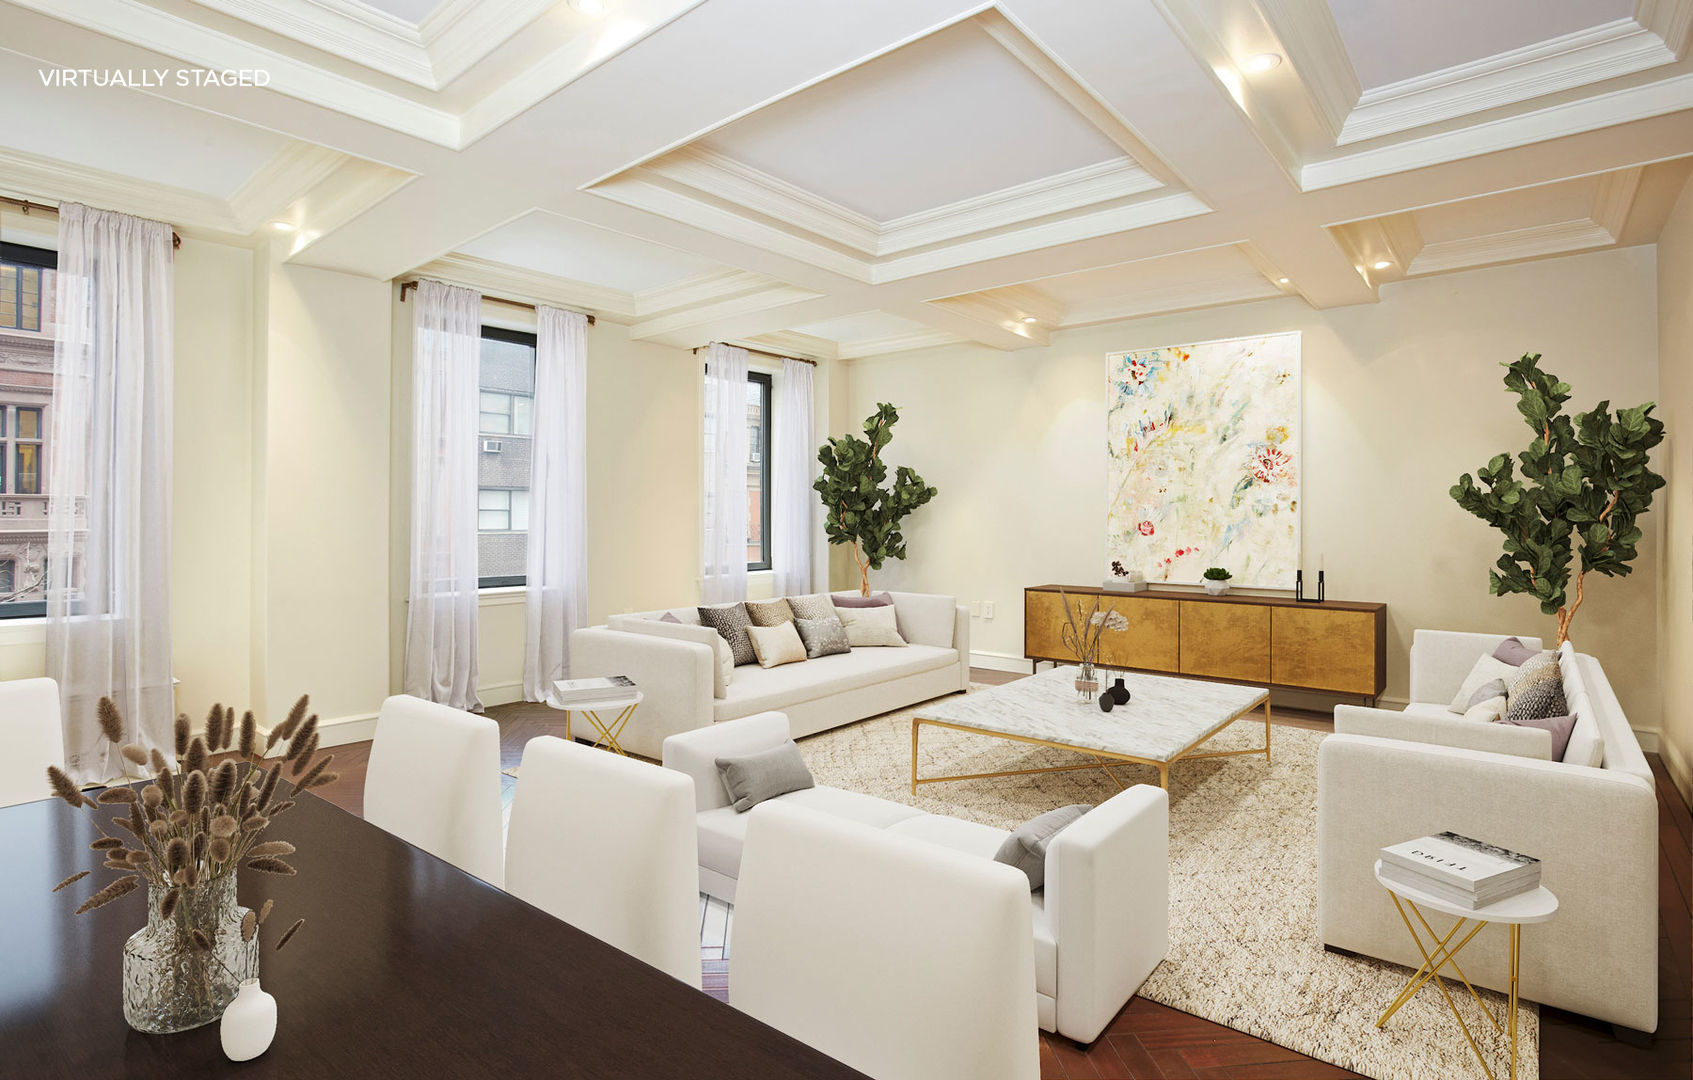 Apartment for sale at 15 East 69th Street, Apt 4B